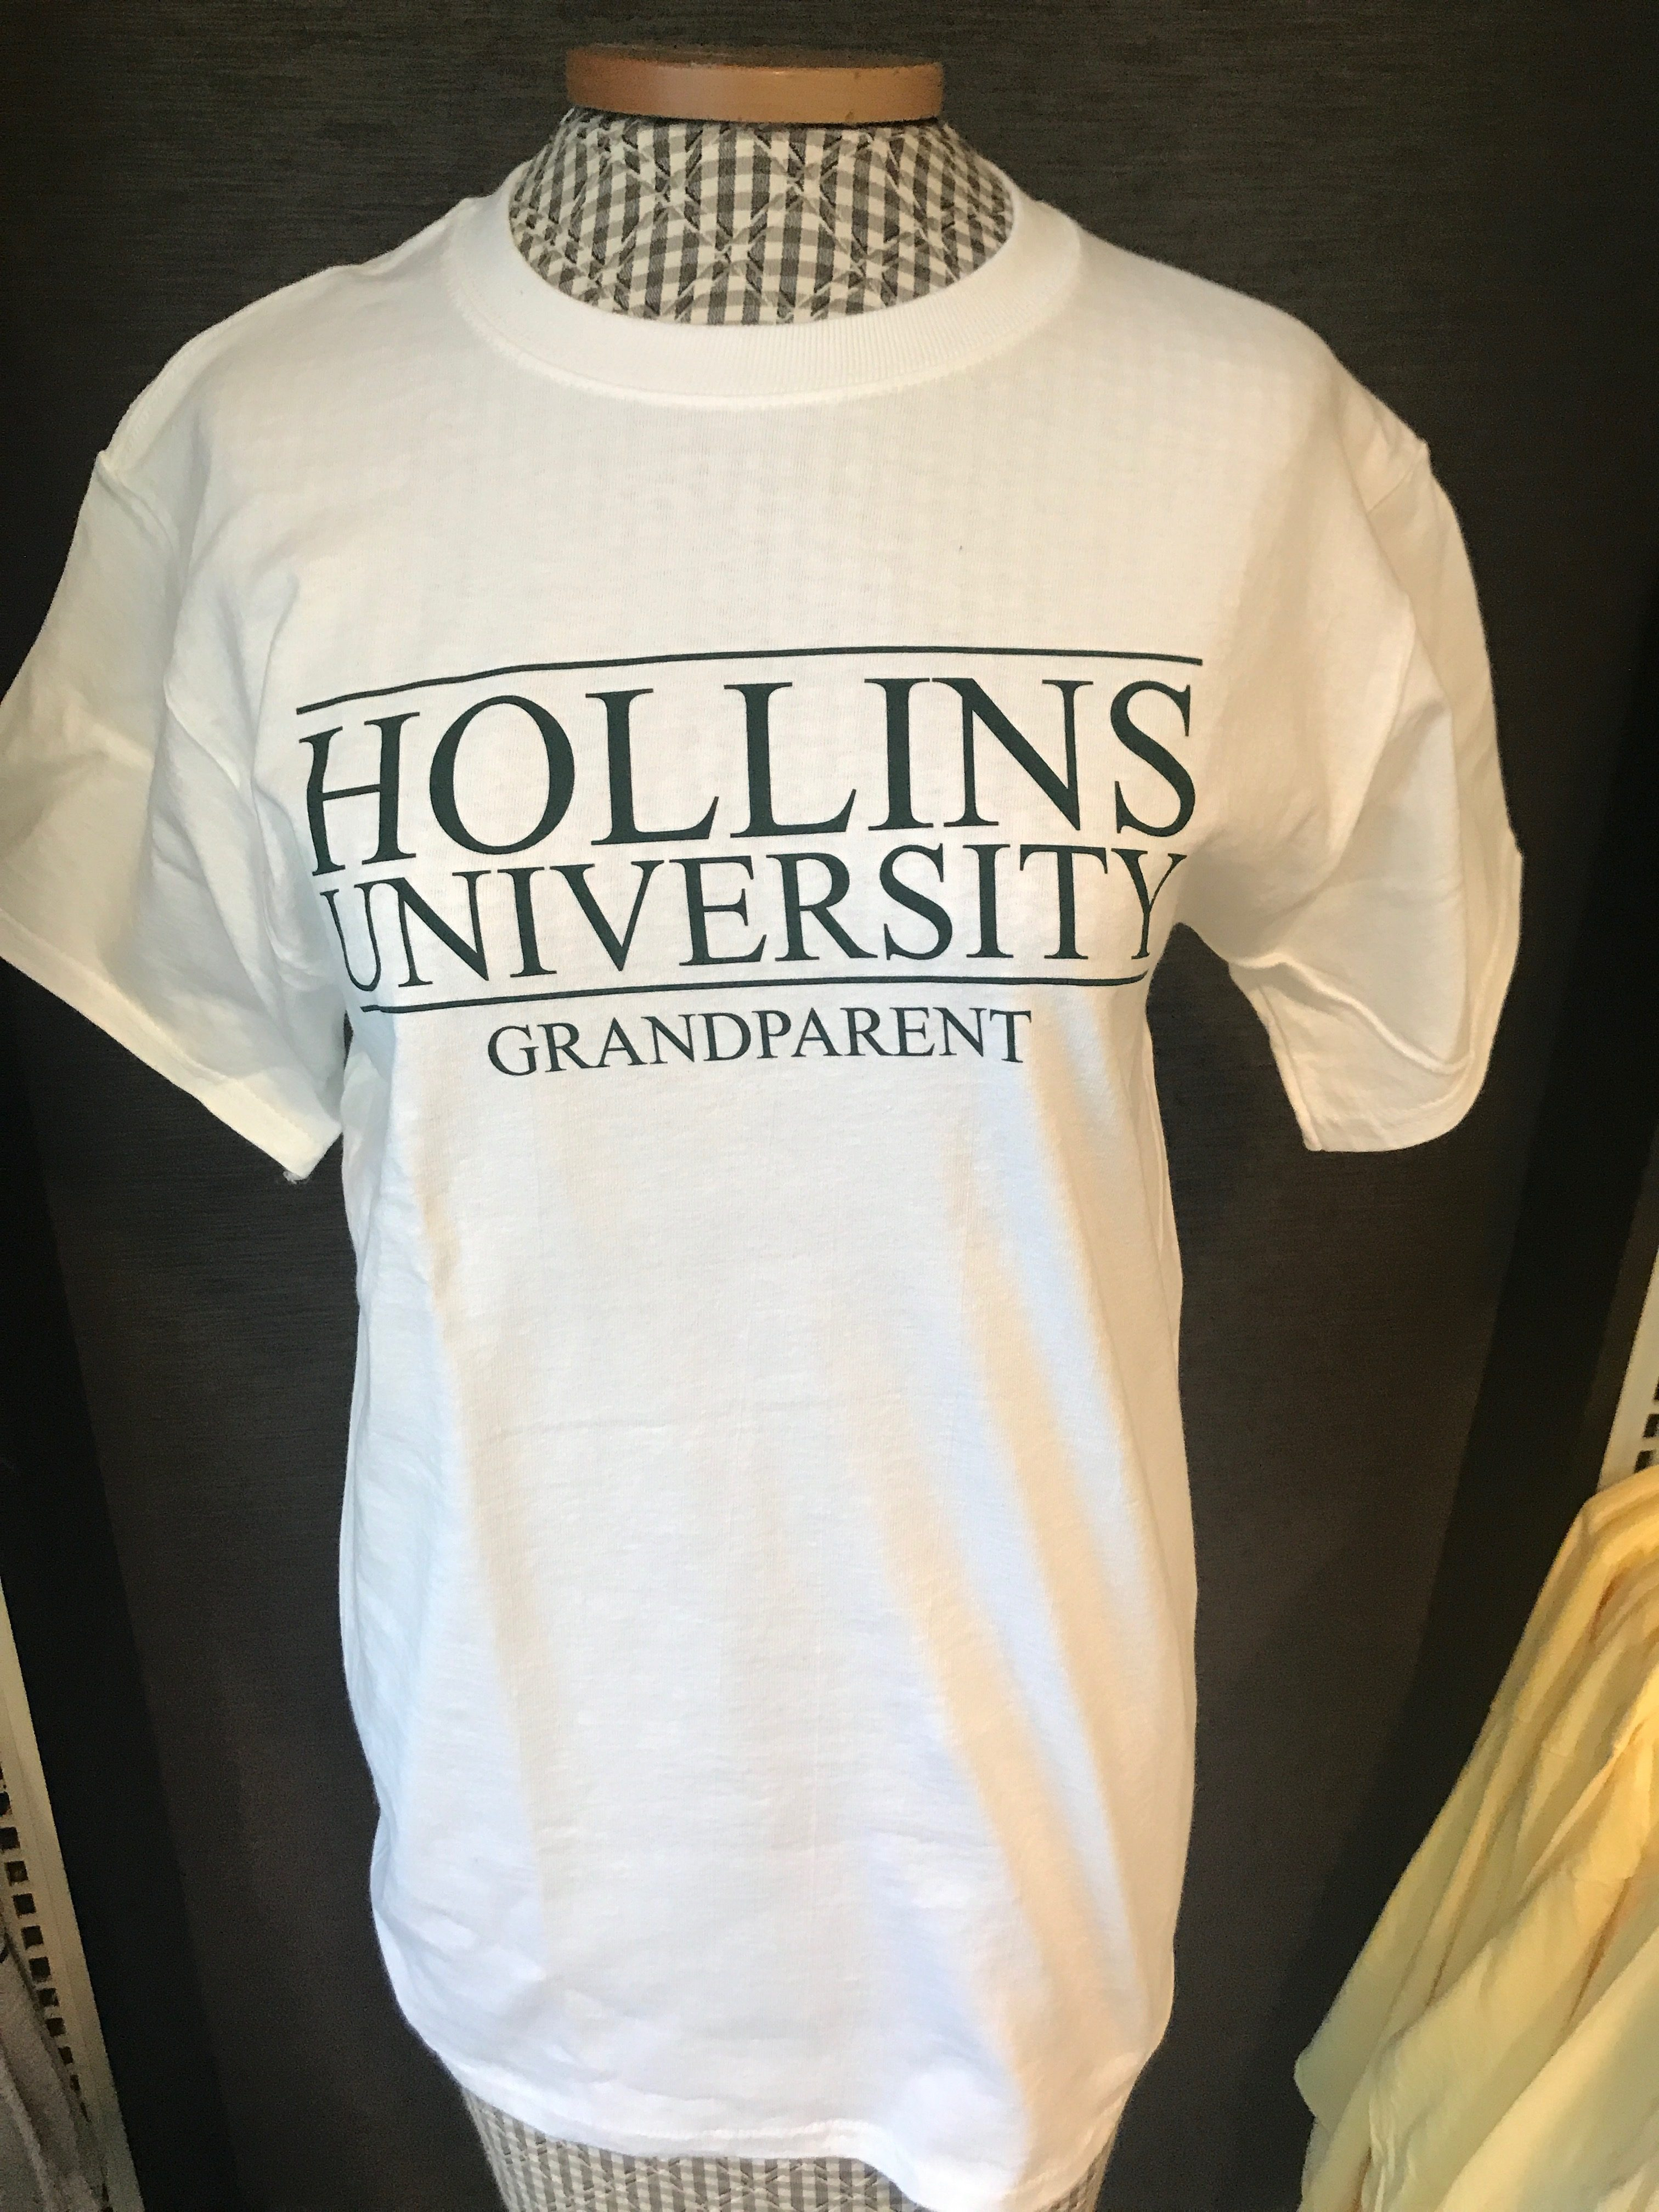 Hollins Grandparent T-shirt